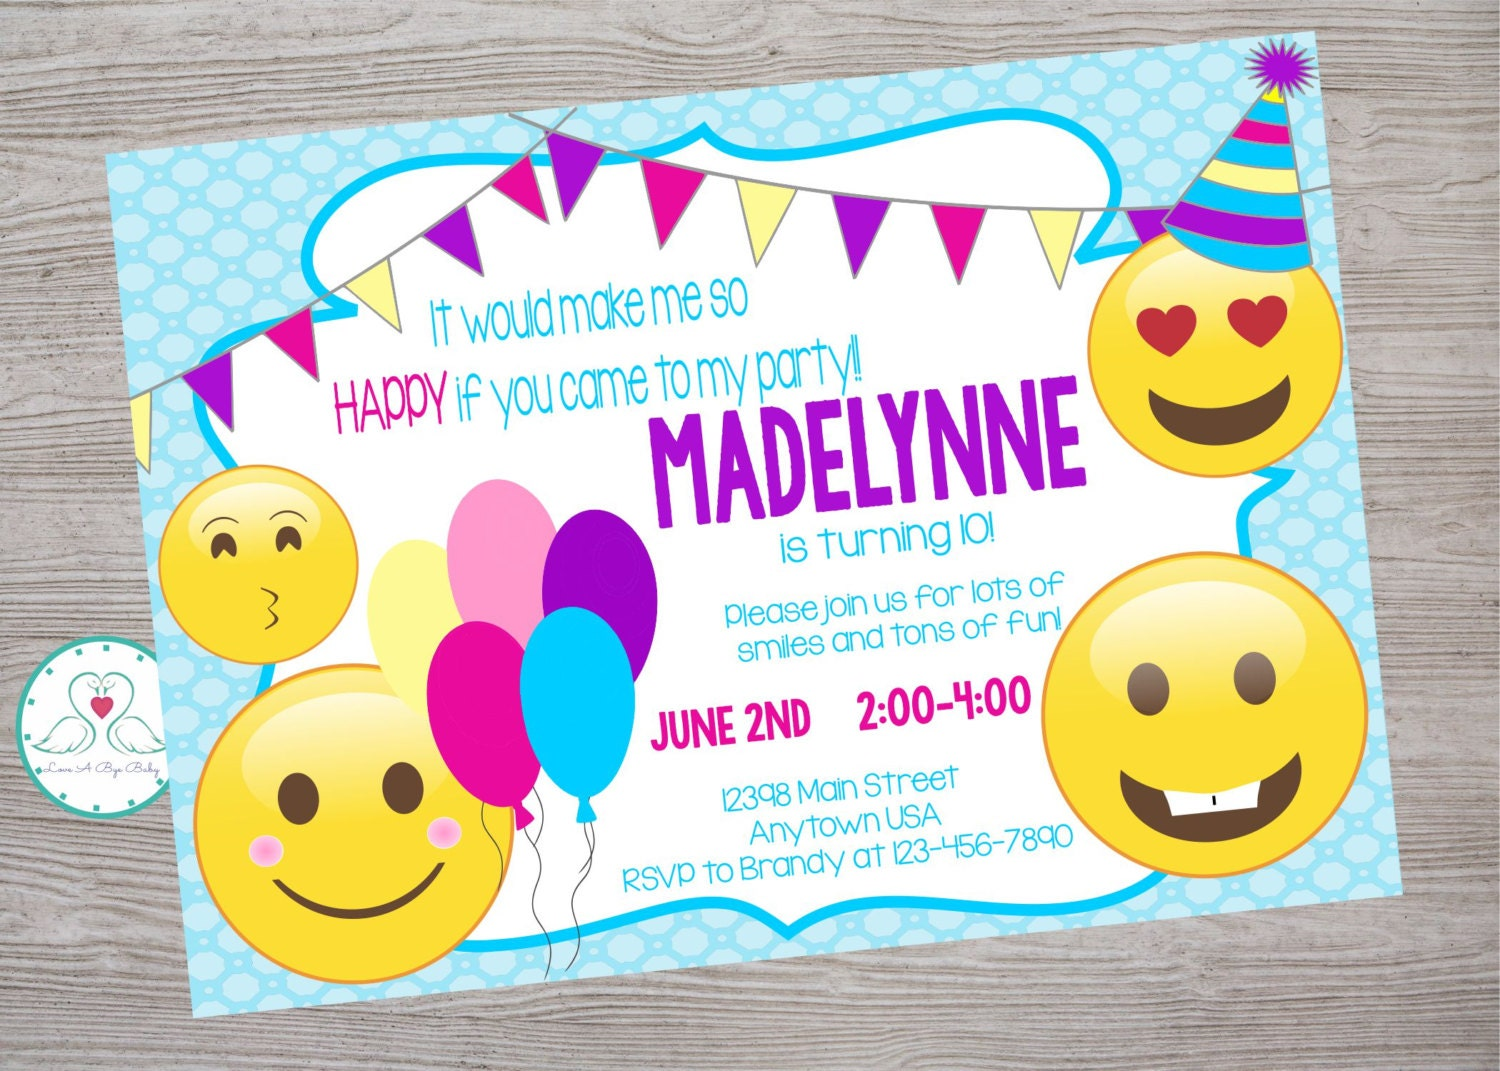 emoji emoticon inspired birthday party invitation printable emoji emoticon inspired birthday party invitation printable digital 128270zoom